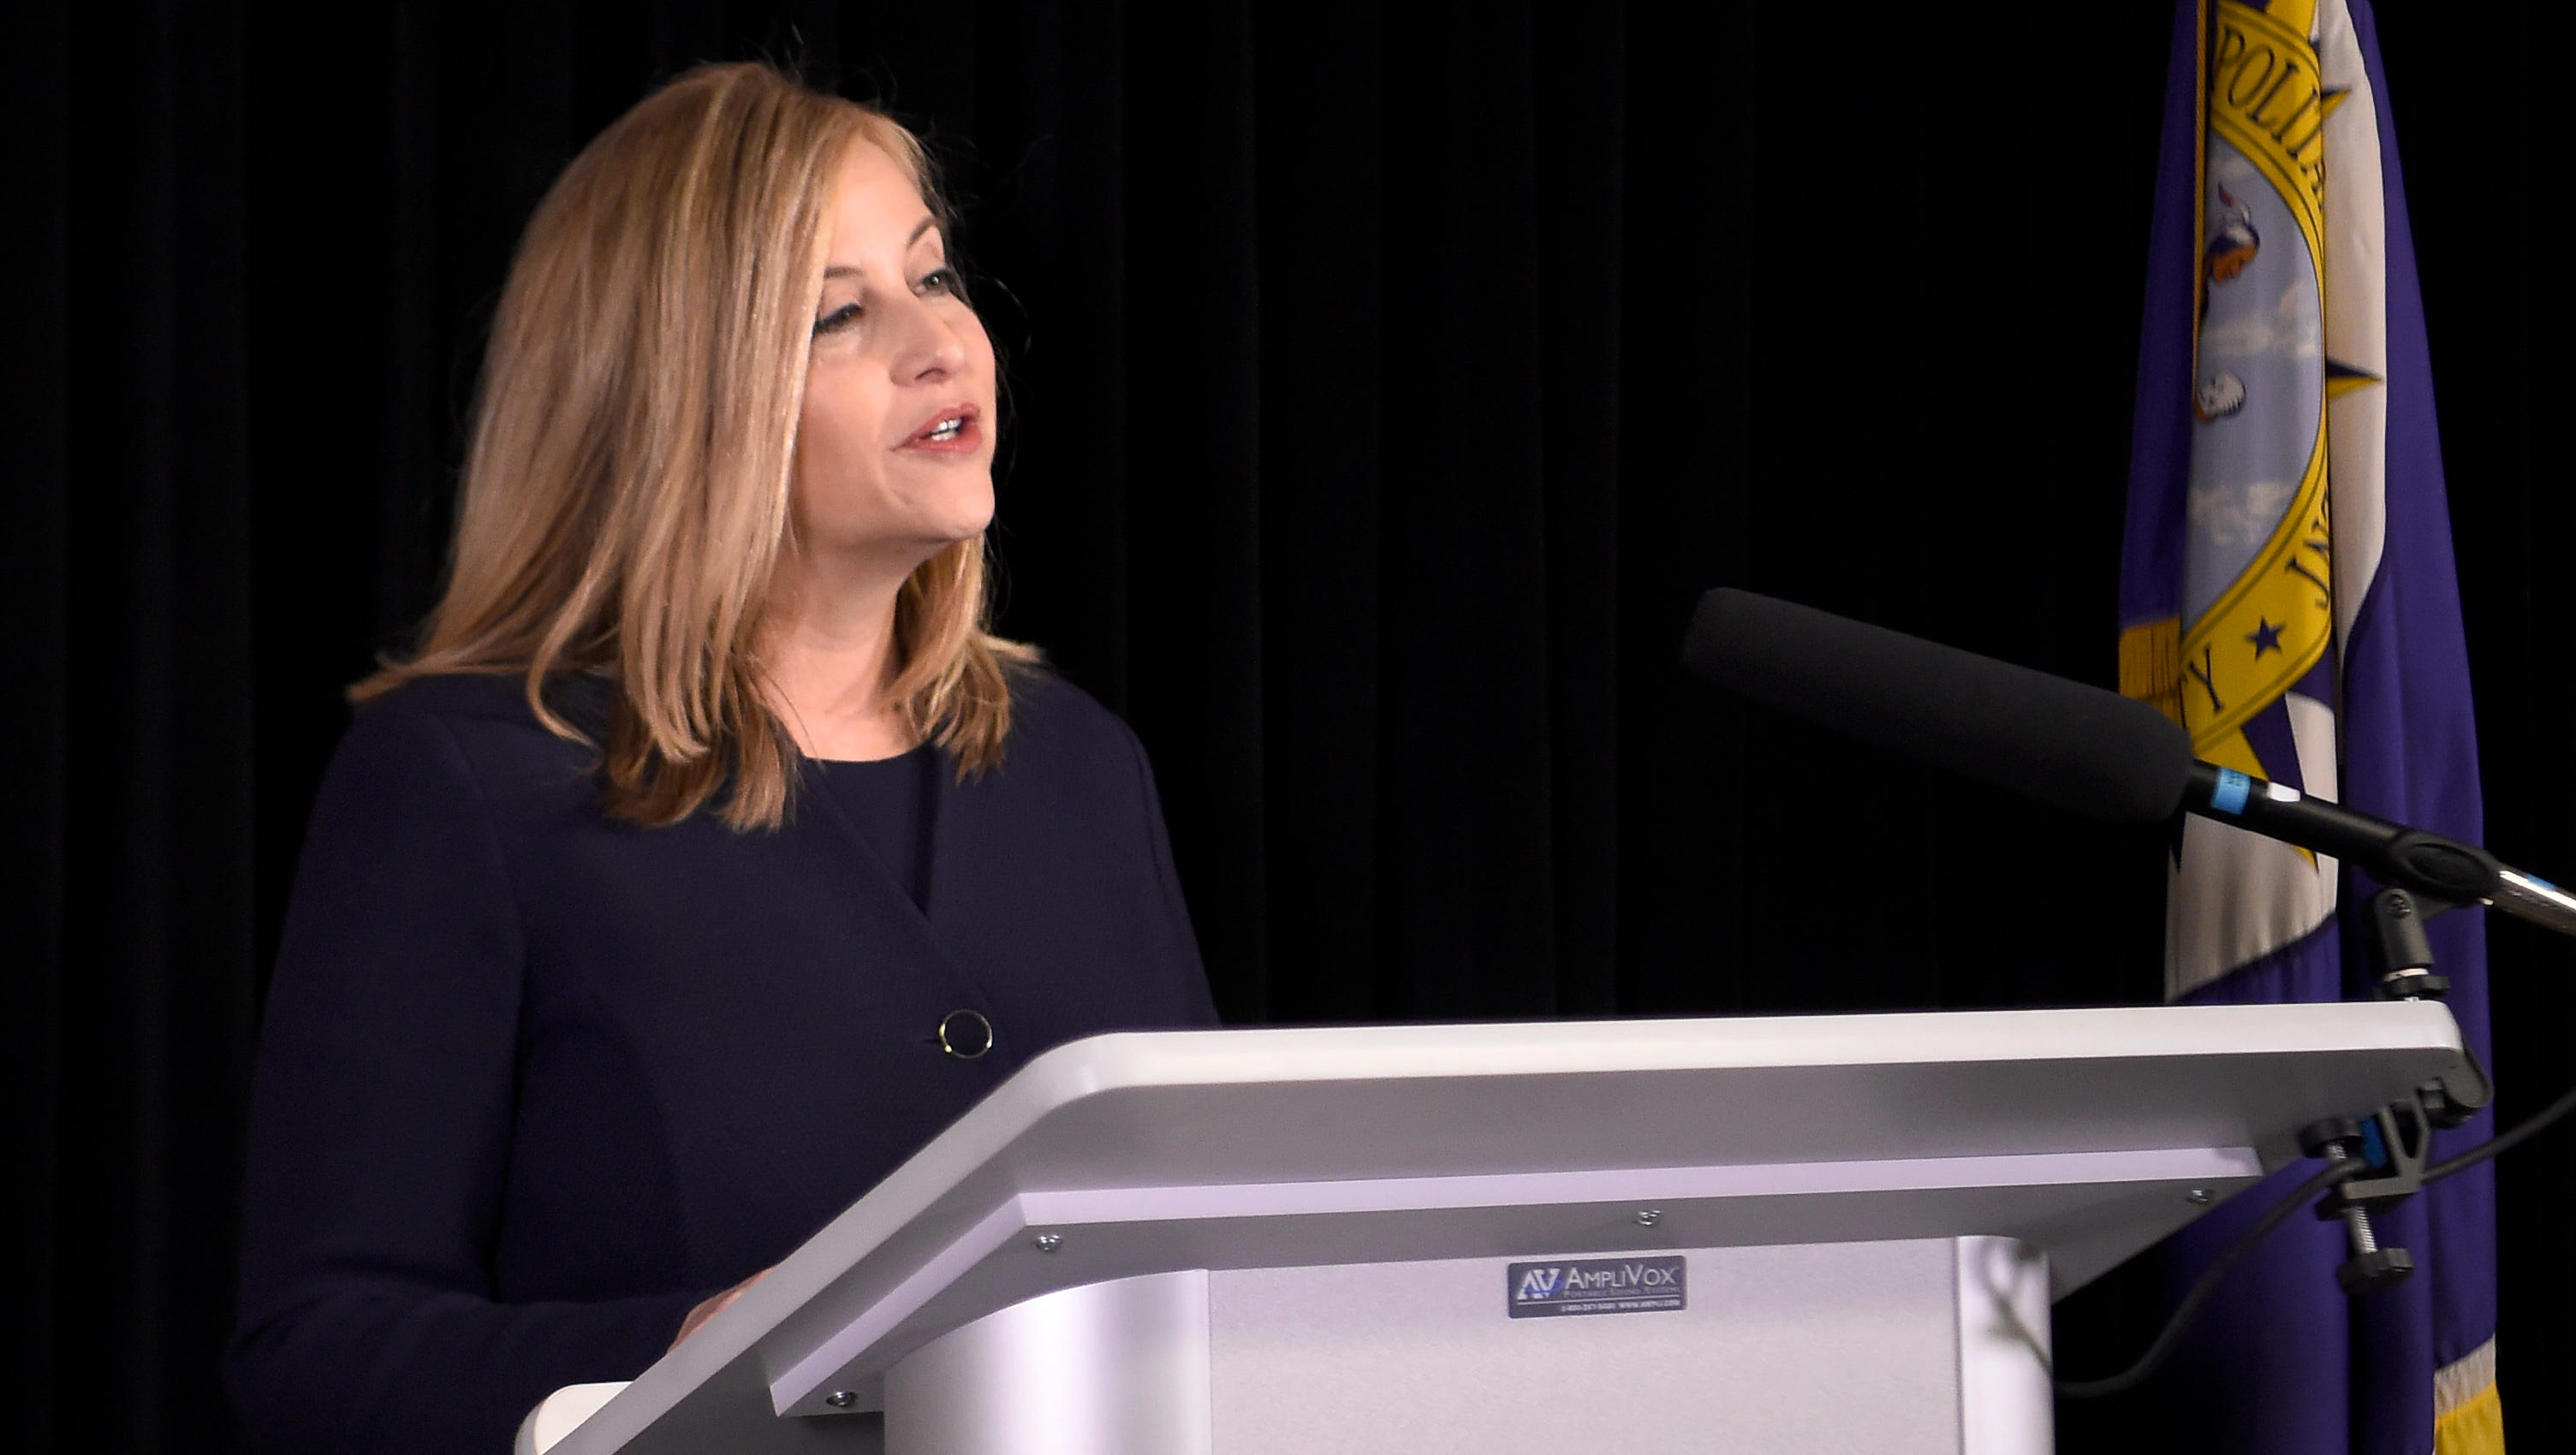 Read: Nashville Mayor Megan Barry's resignation remarks